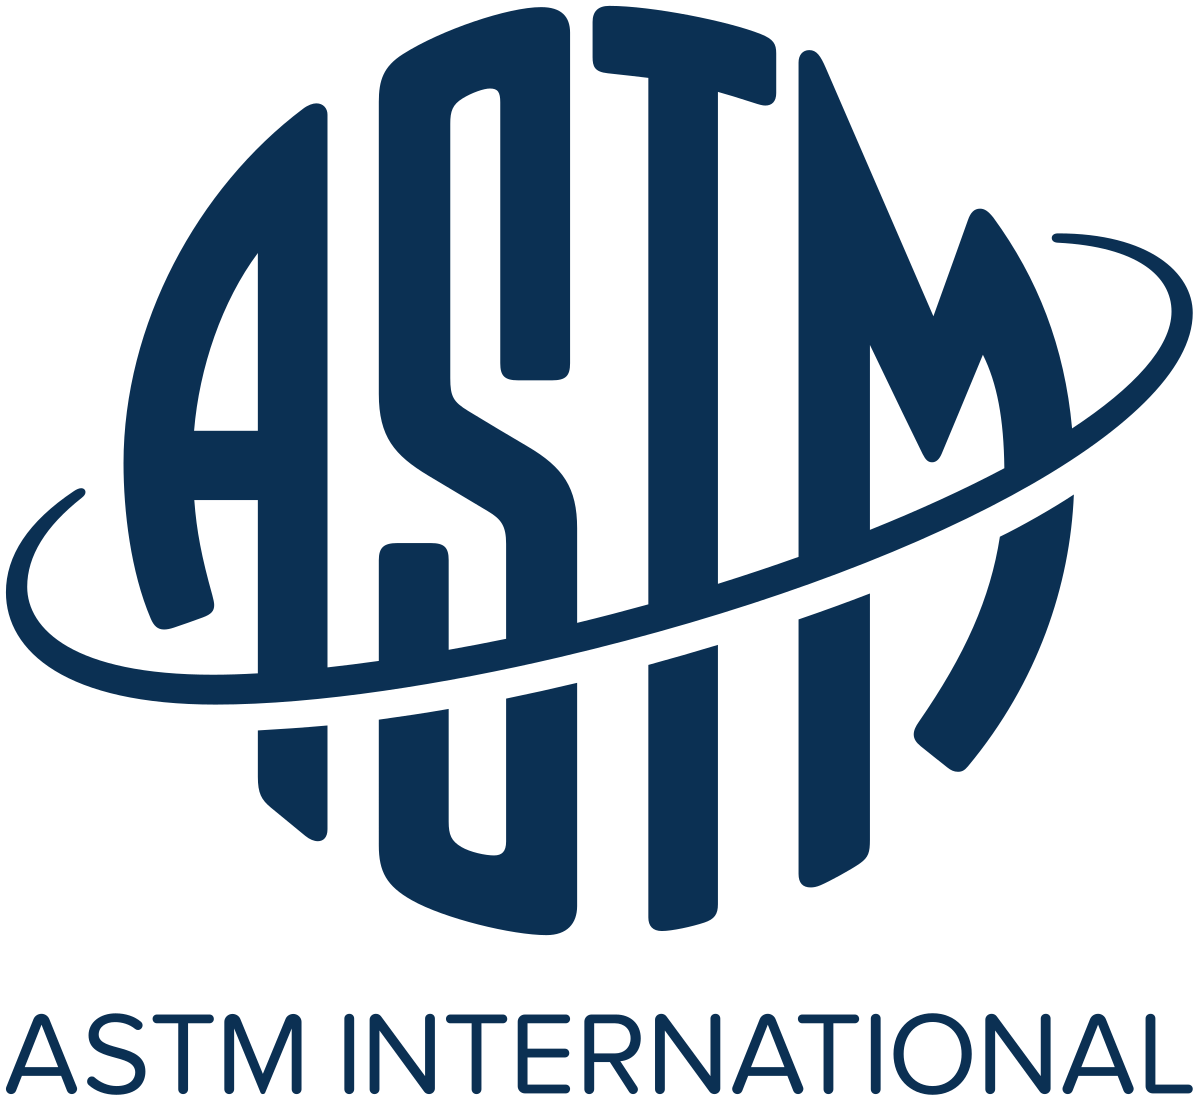 ASTM Standard for Portland Cement-Datis Export Group